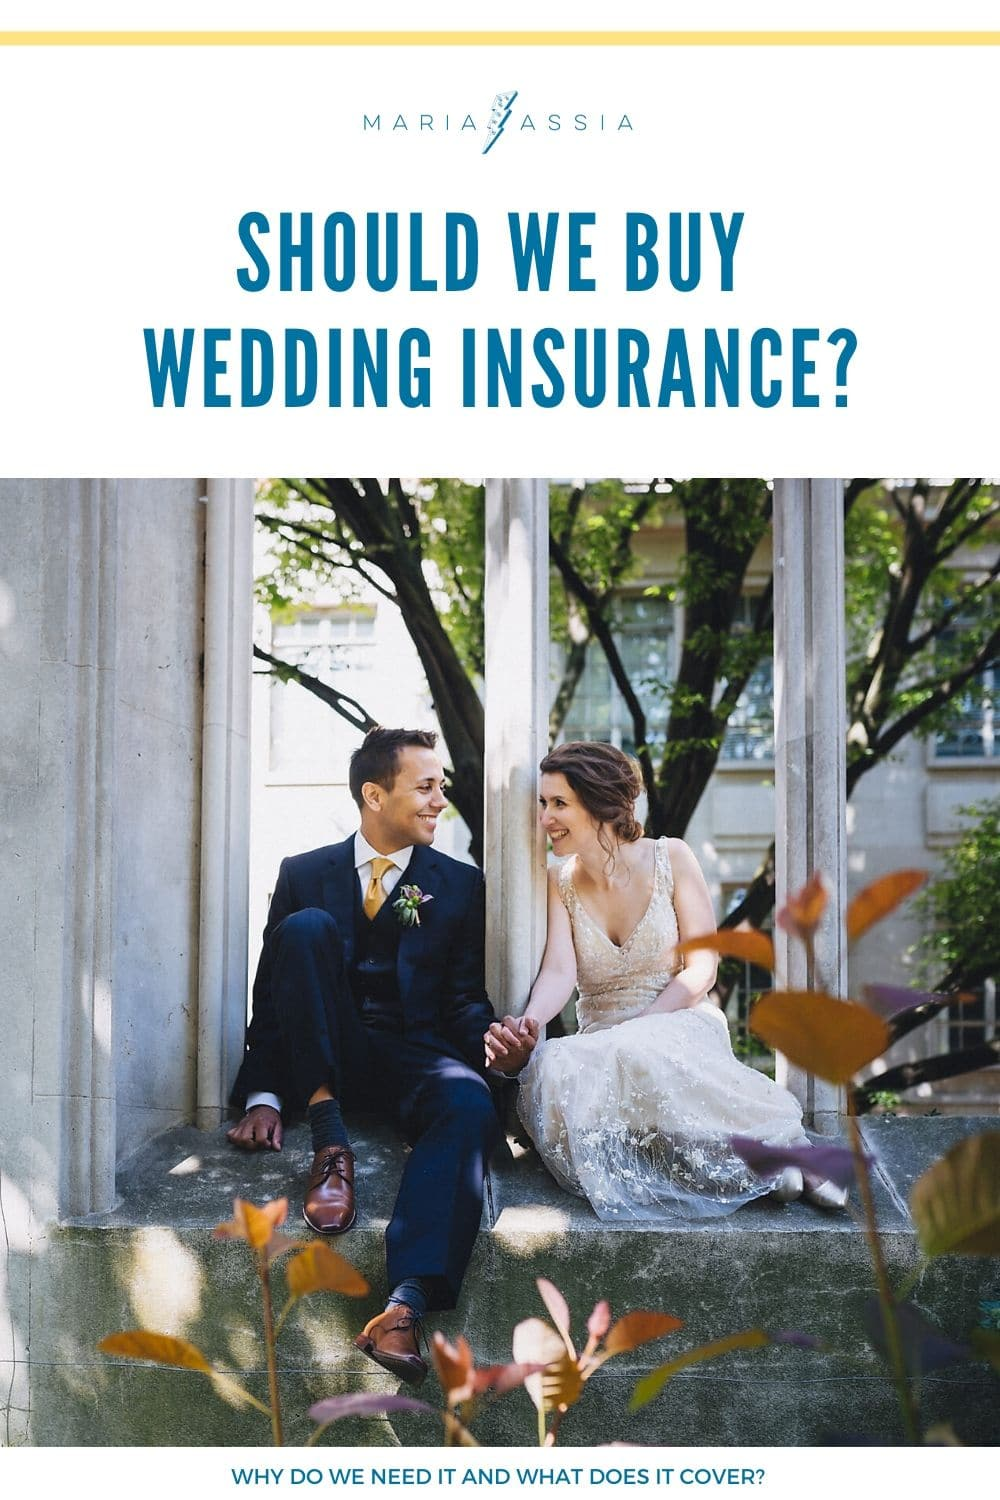 Should you buy wedding insurance?